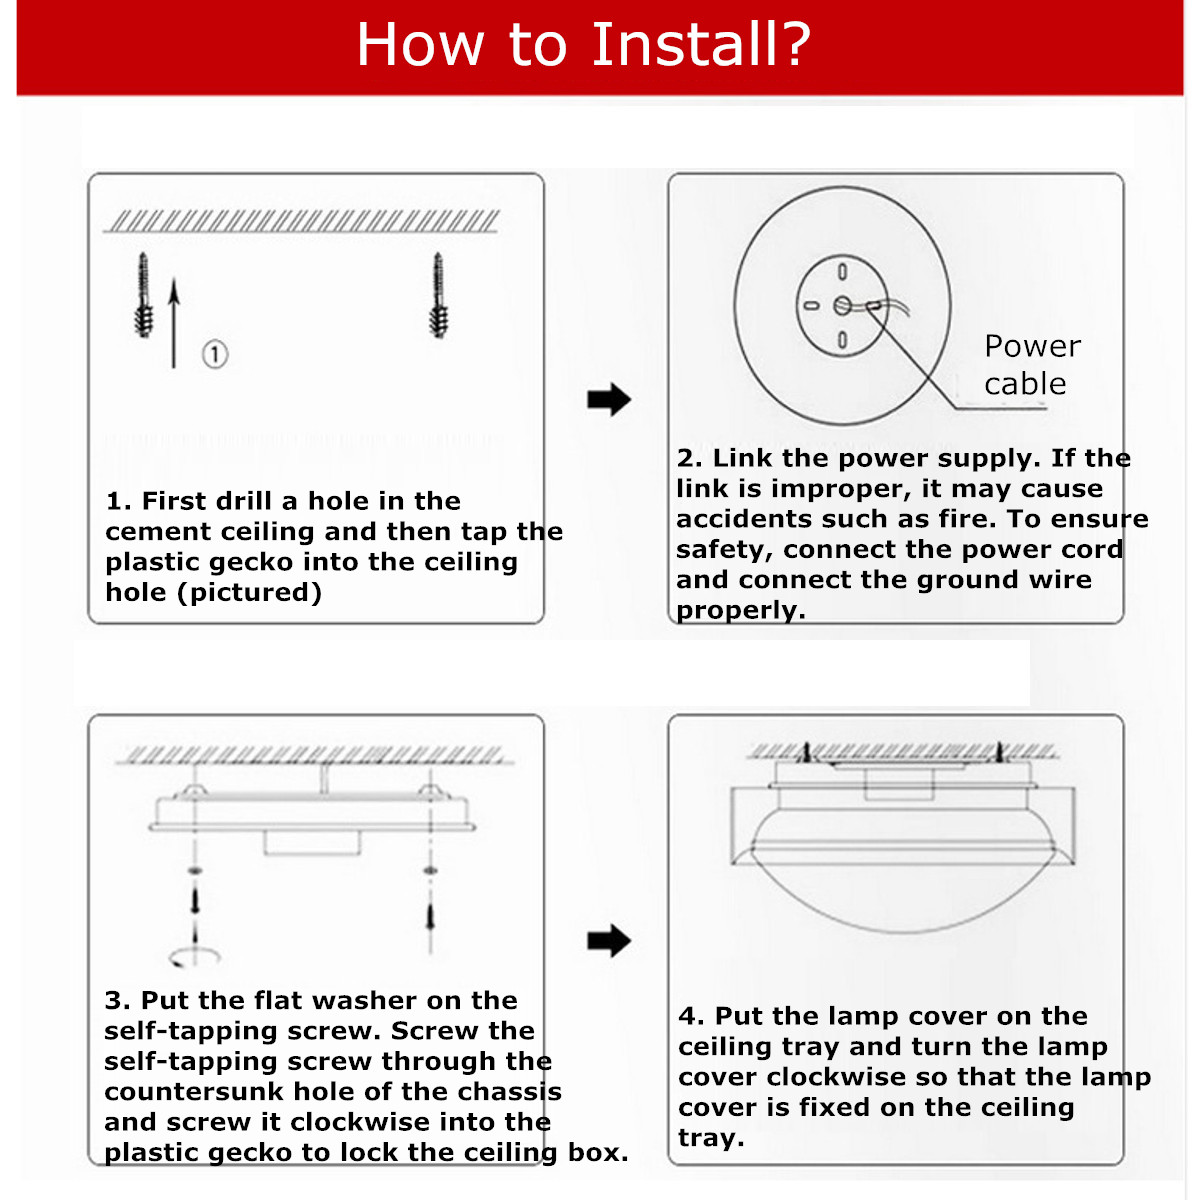 12W Round Ceiling Mount Lights Bedroom Hanging Lamp Home Room Fixture on how to wire a room, bedroom photography diagram, rewiring a living room diagram, how to diagram a room,